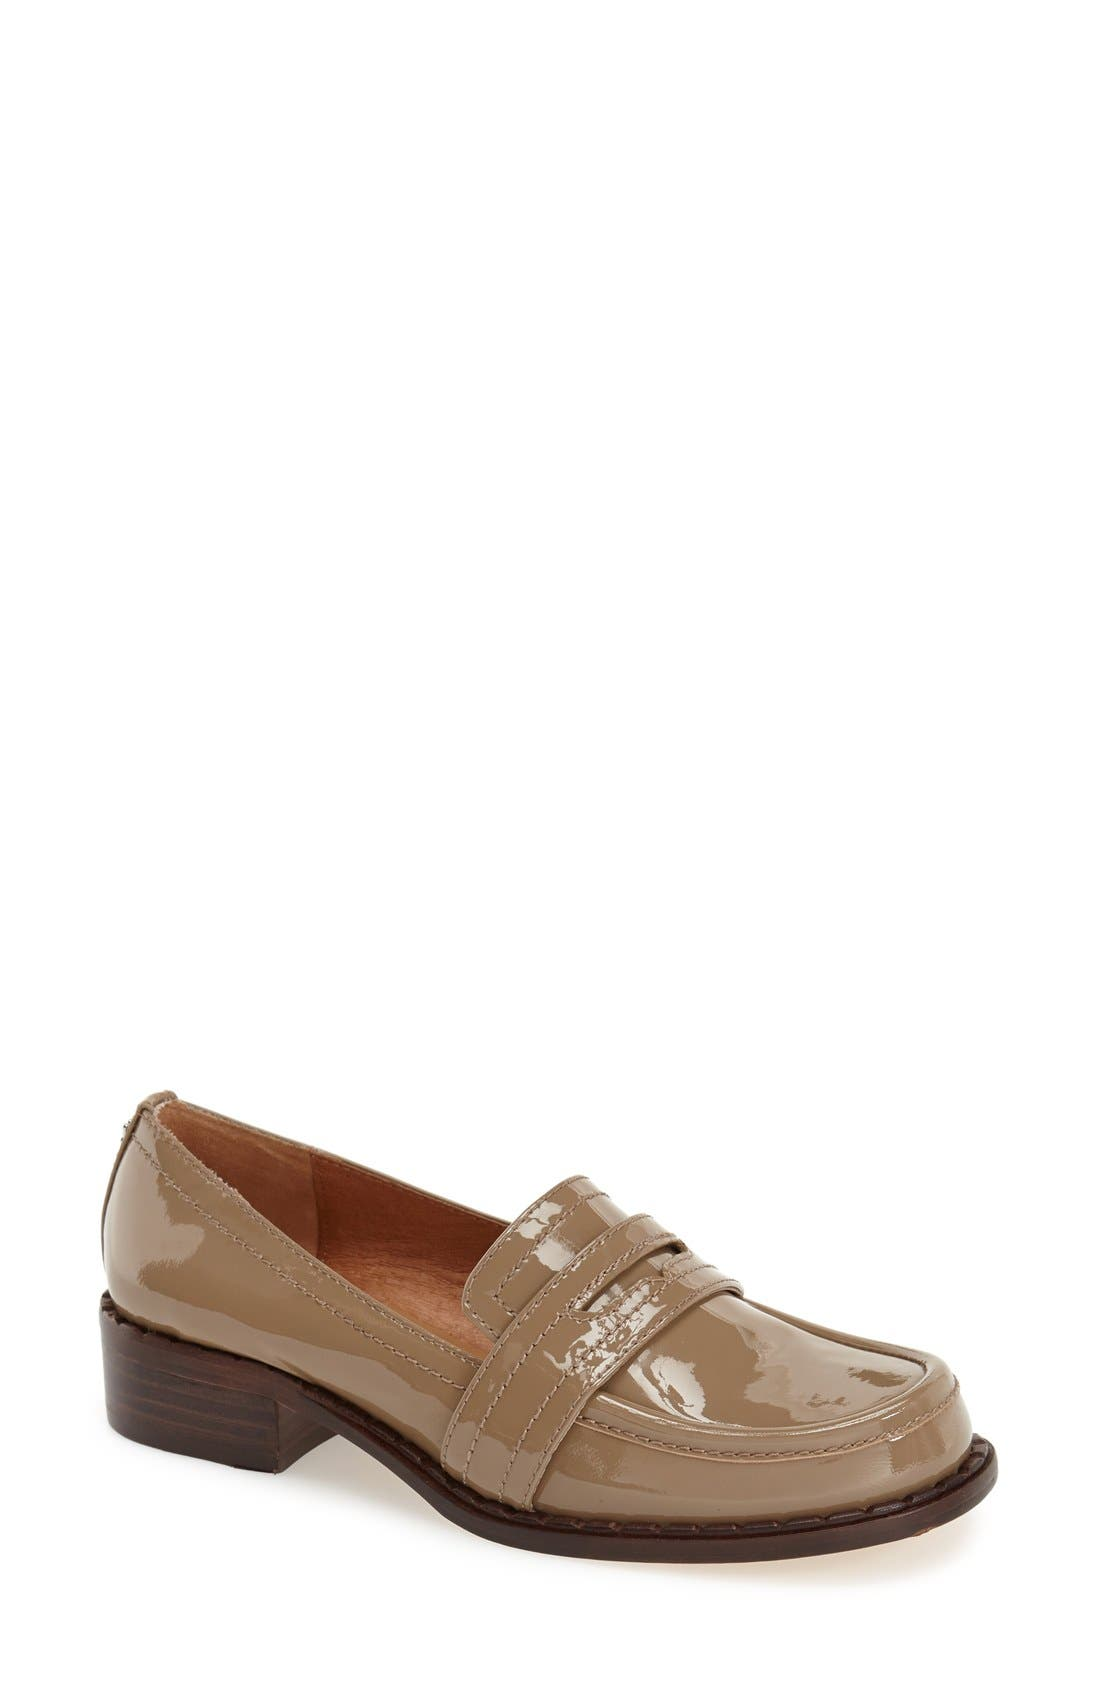 'Mystique' Penny Loafer,                             Main thumbnail 3, color,